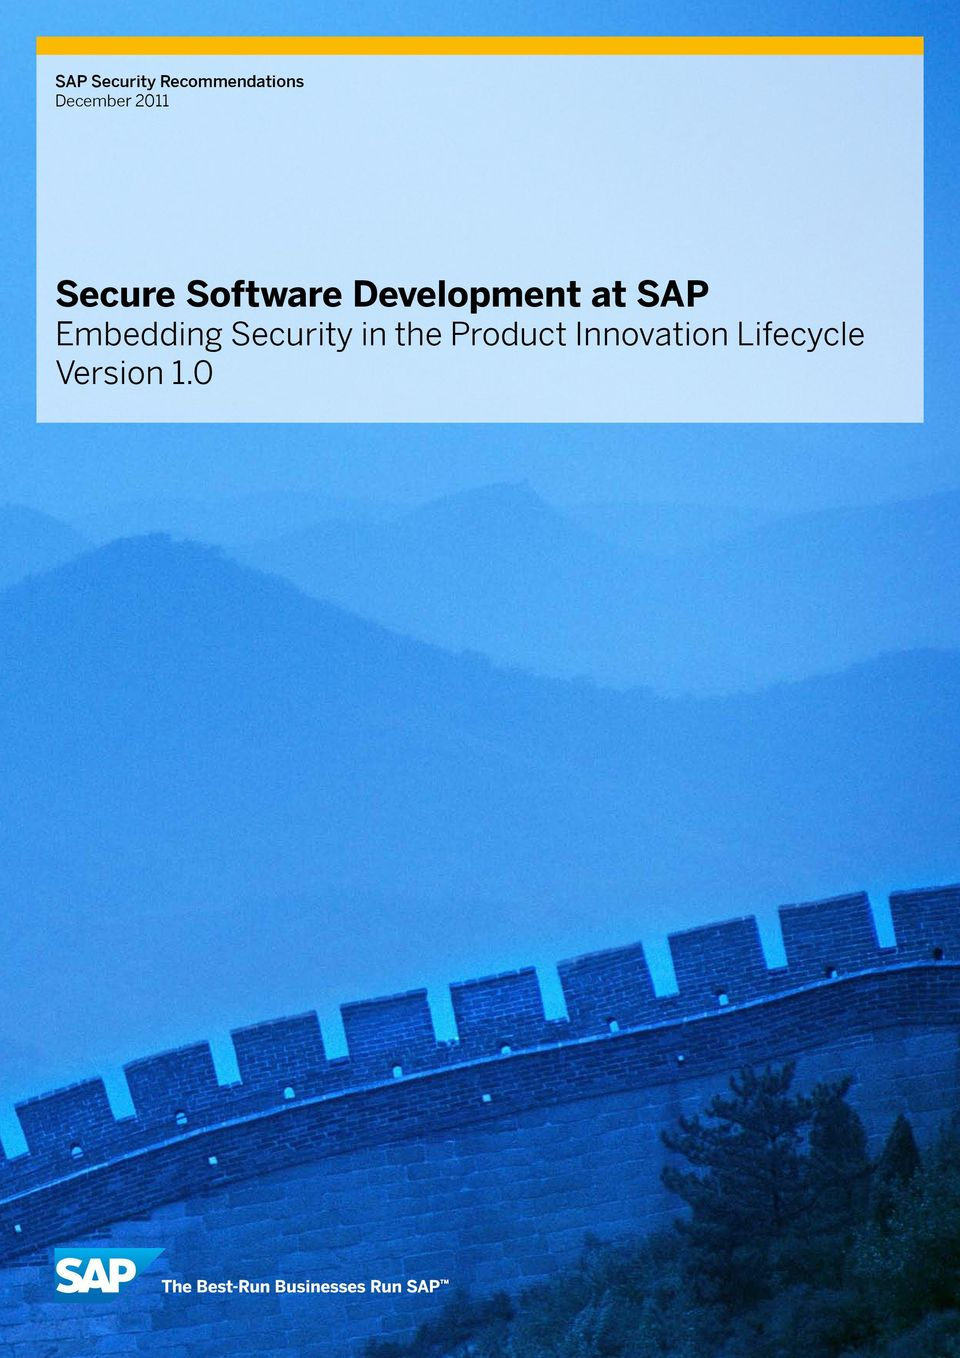 Development at SAP Embedding